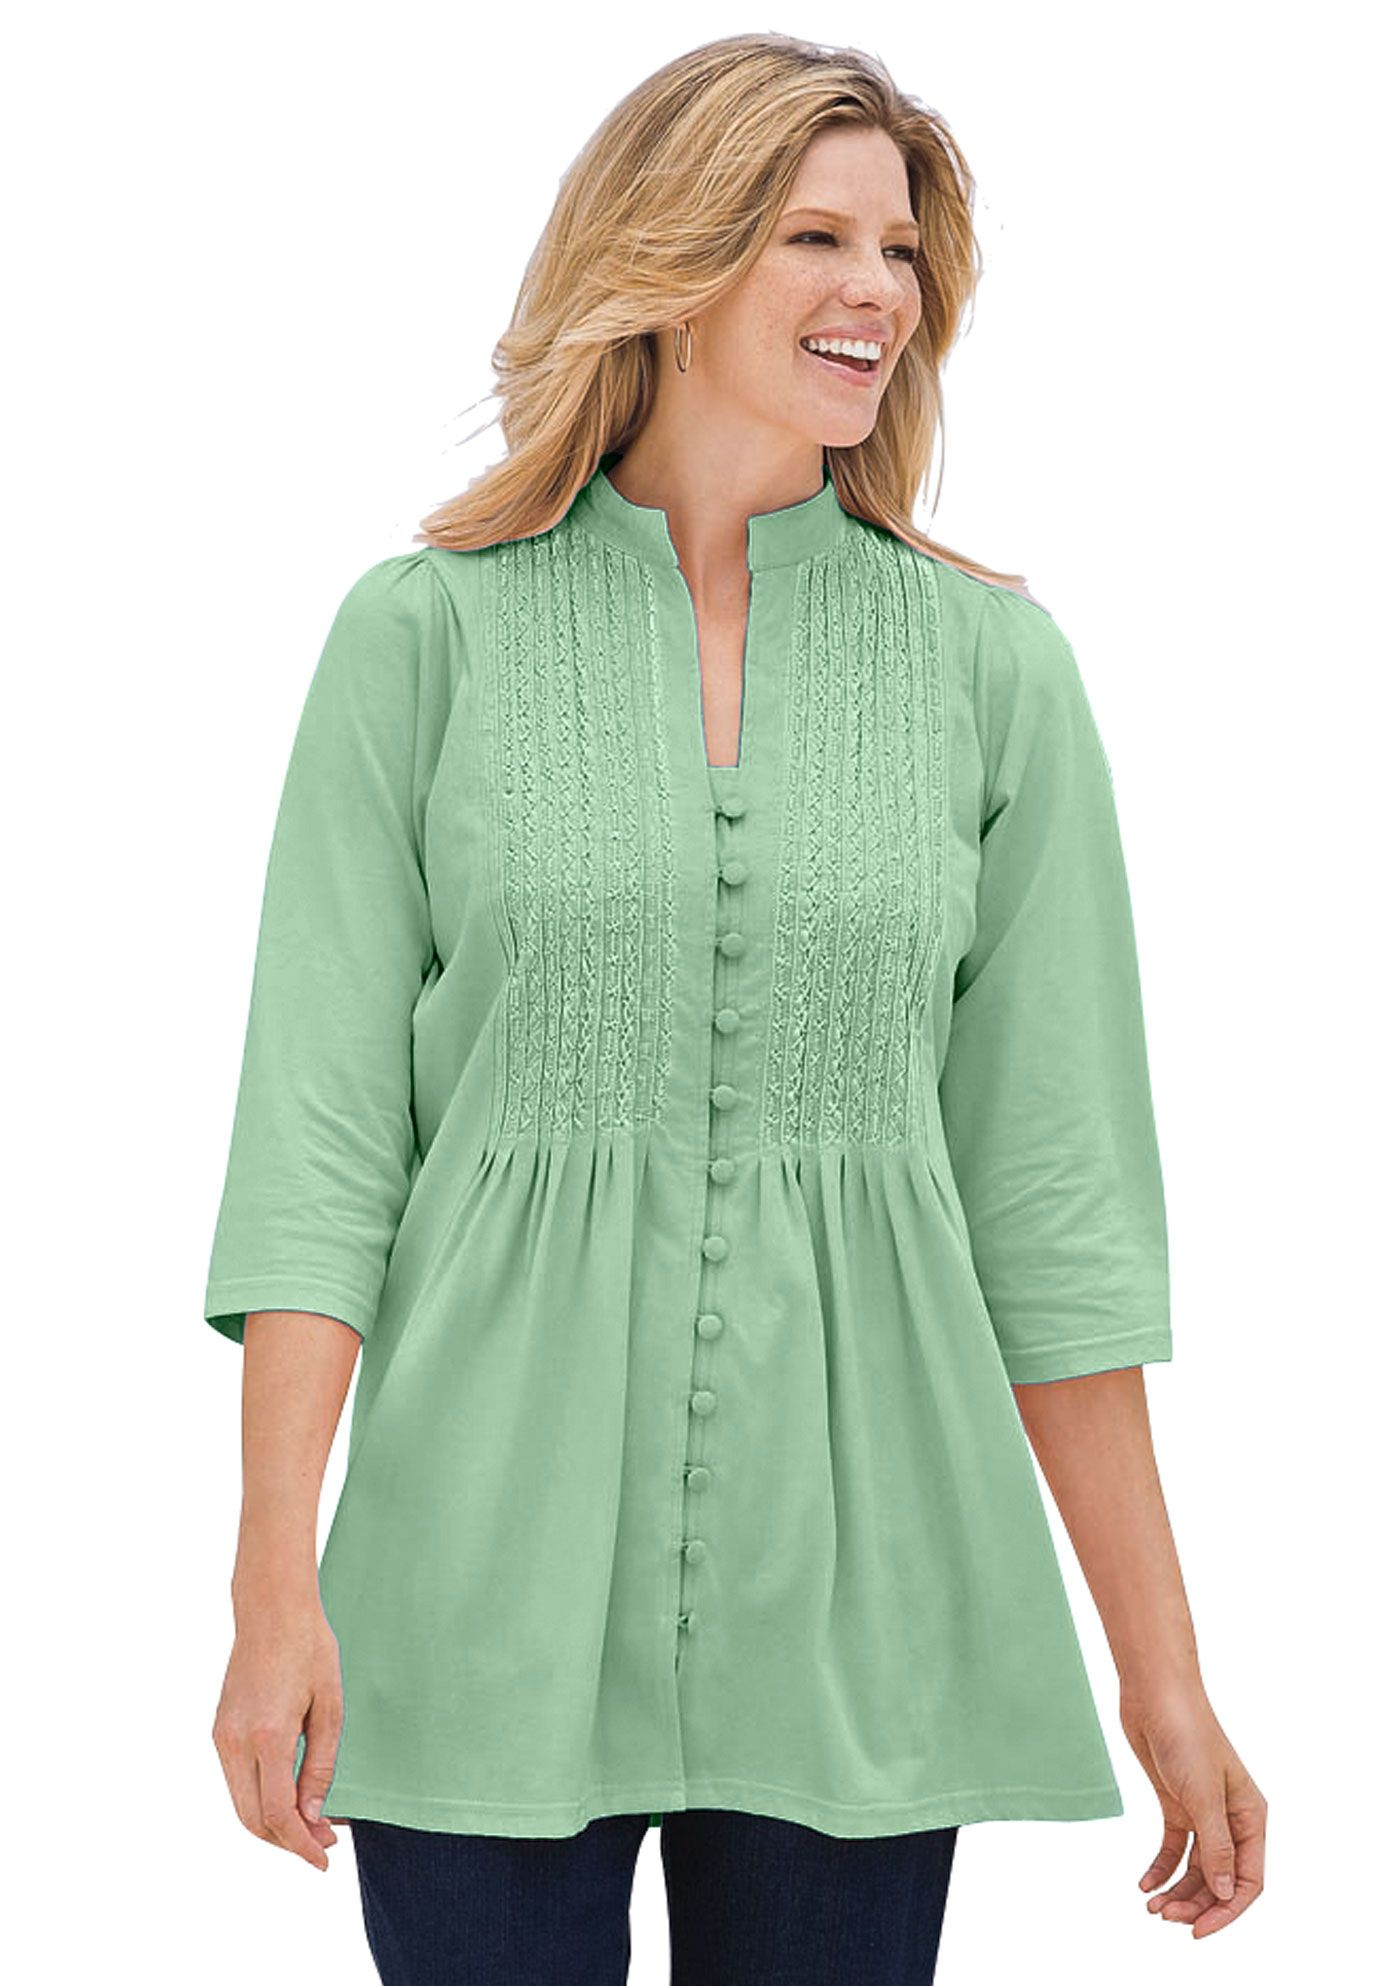 44898748732632 Empire Style Tops for Women | PLUS SIZE TUNIC TOP, Pleated, Pintucked &  Embroidered, Pale Seaform .